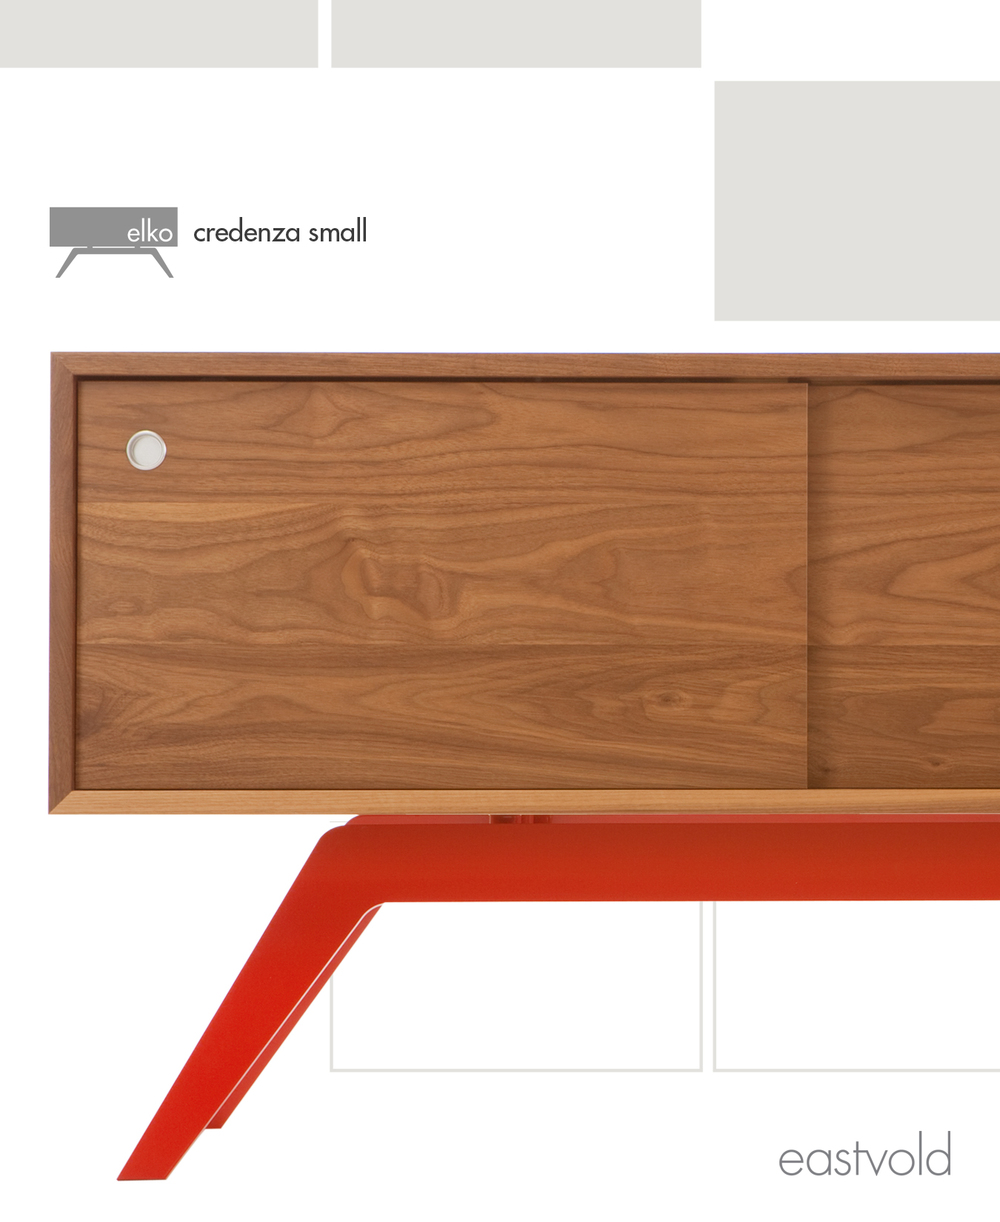 ELKO_CREDENZA_SMALL_SELL_SHEET copy.jpg